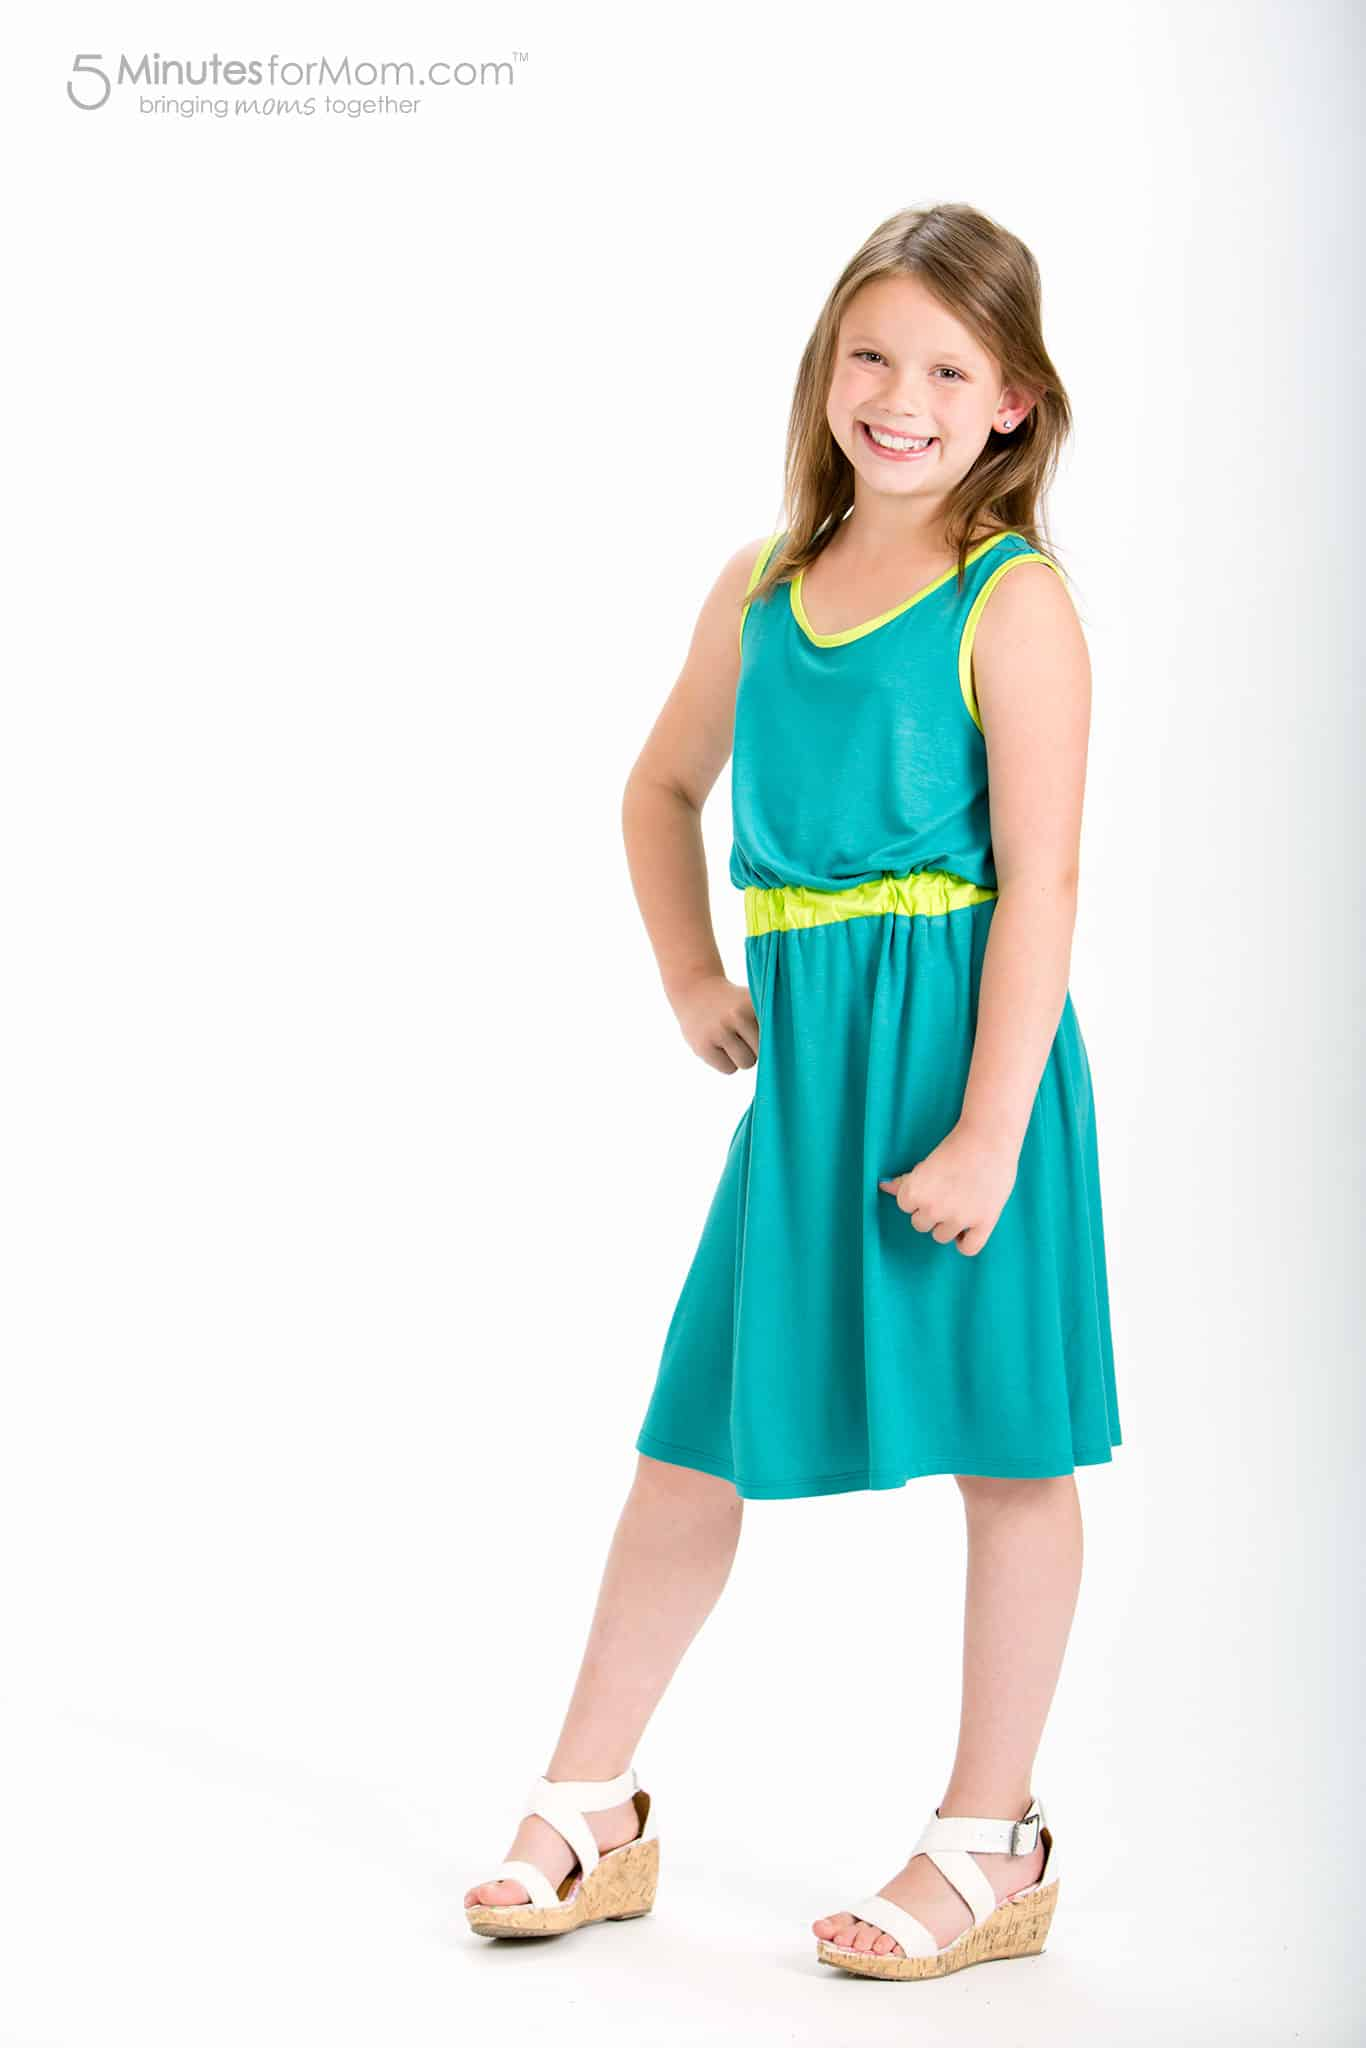 Evelyn Alex - Clothes for Tween Girls - Green Dress for Tweens